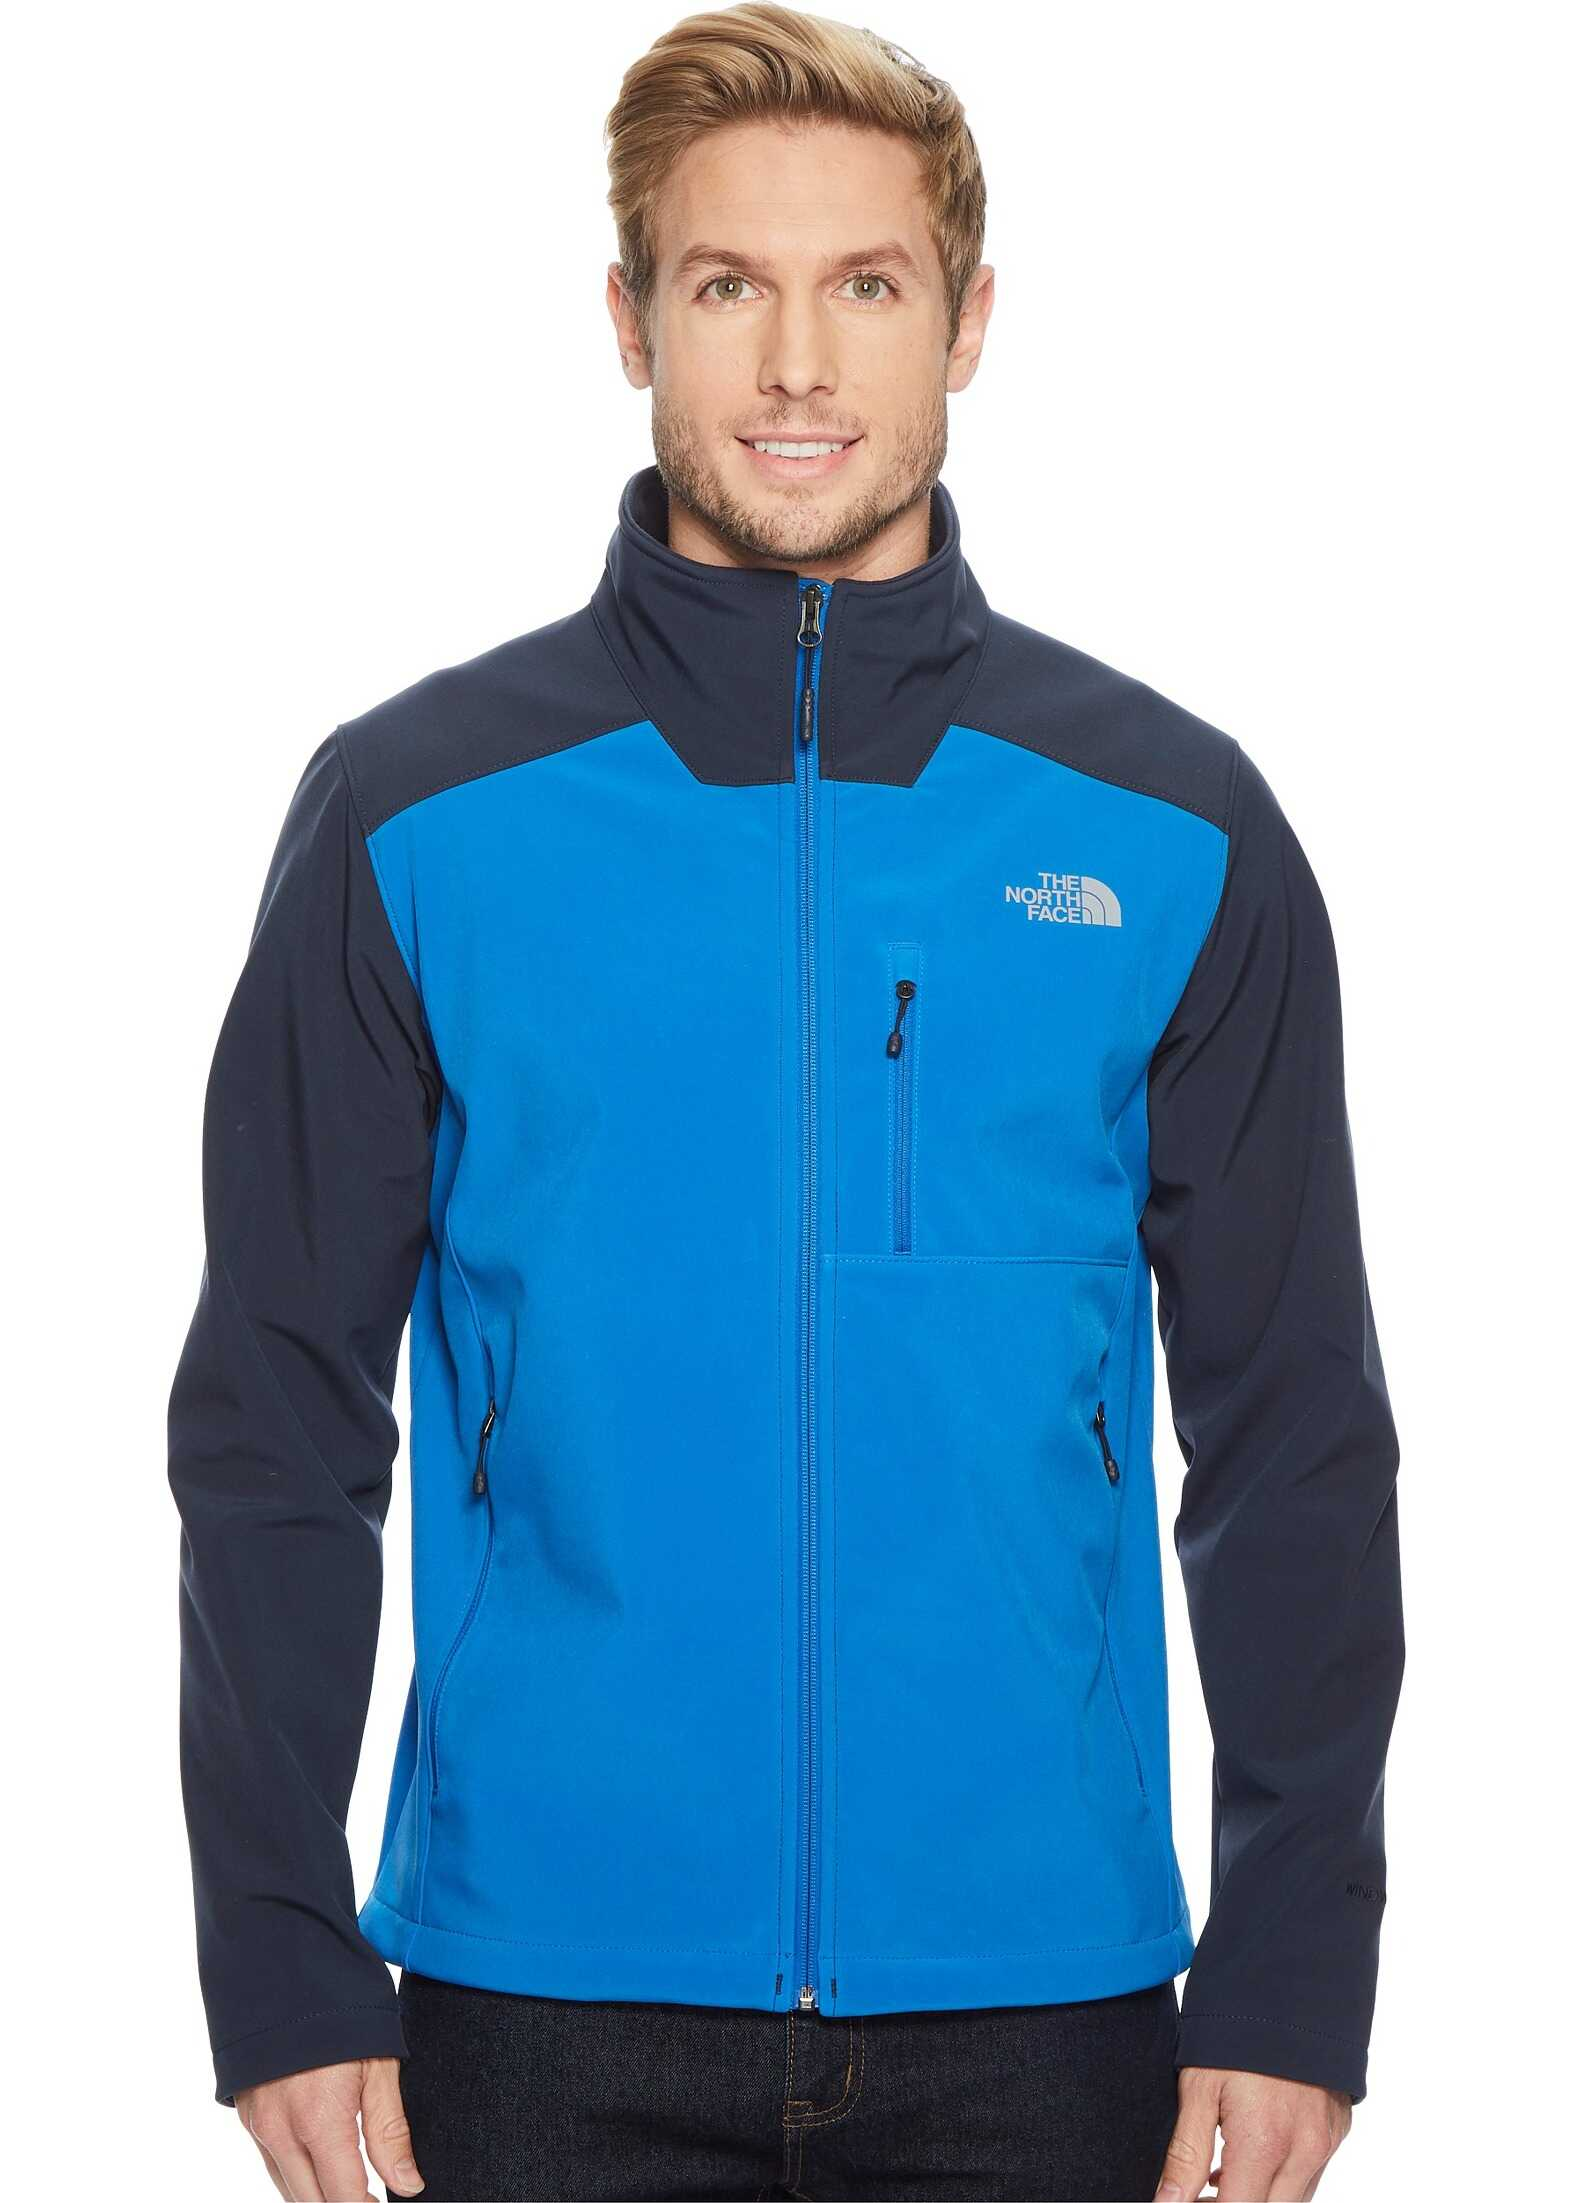 The North Face Apex Bionic 2 Jacket Turkish Sea/Urban Navy